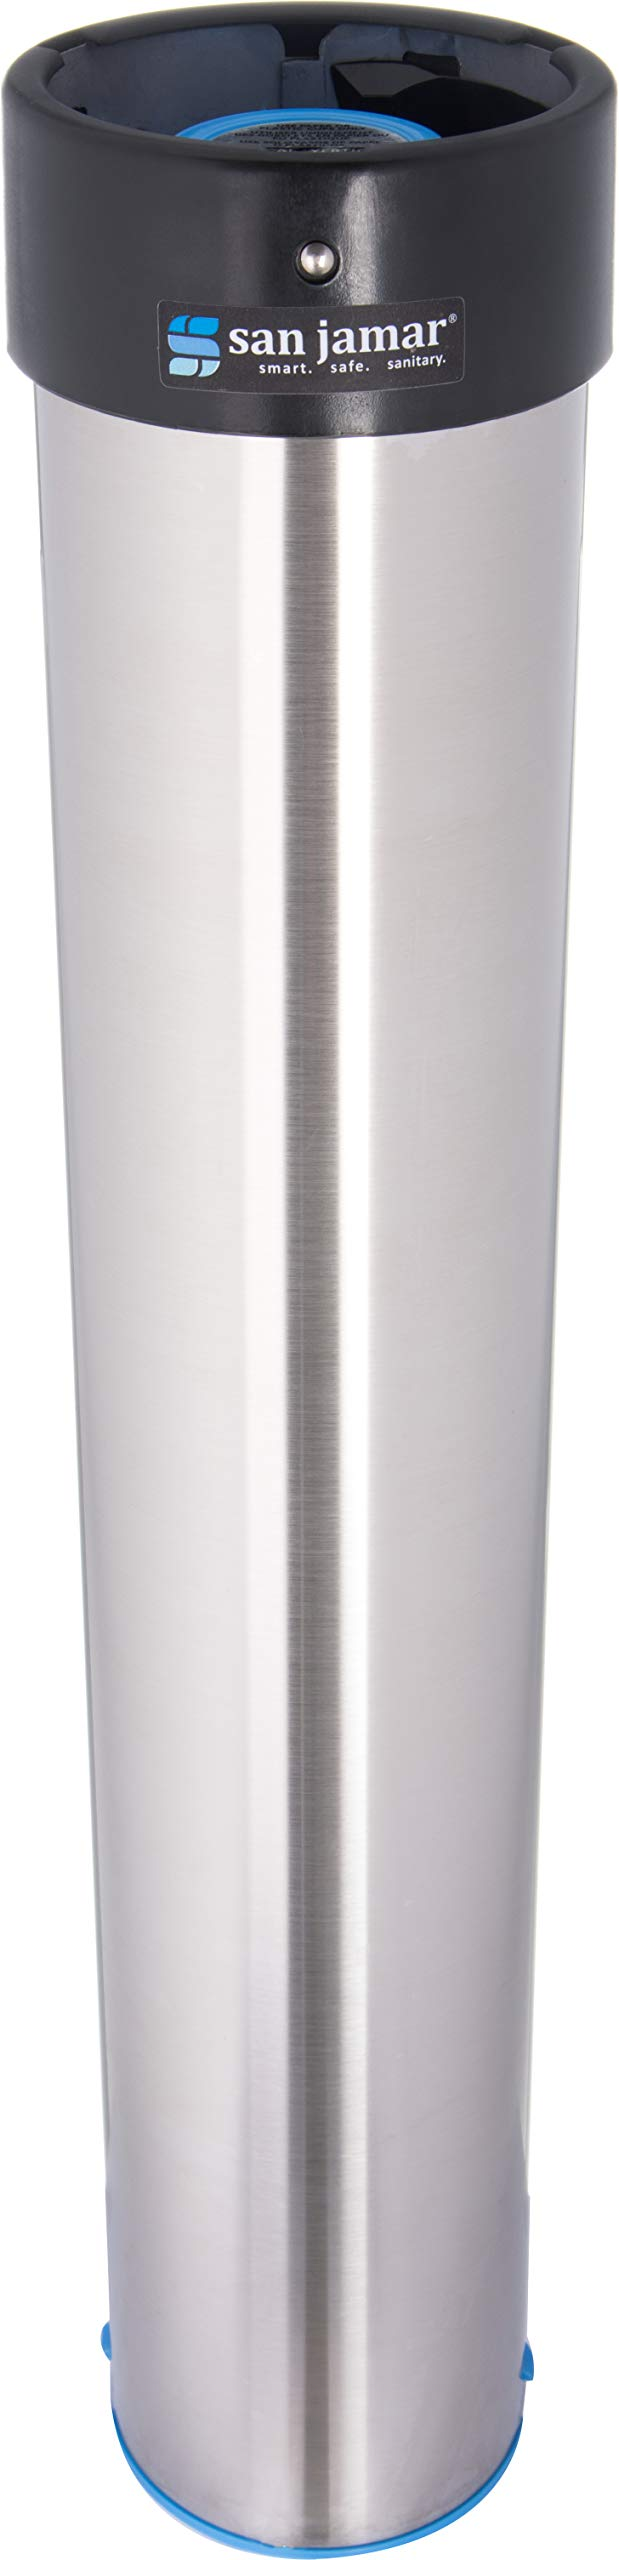 San Jamar C3400E Stainless Steel Vertical Surface Mount Beverage Cup Dispenser, Fits 12oz to 24oz Cup Size, 2-3/4'' to 3-7/8'' Rim, 23-1/2'' Tube Length